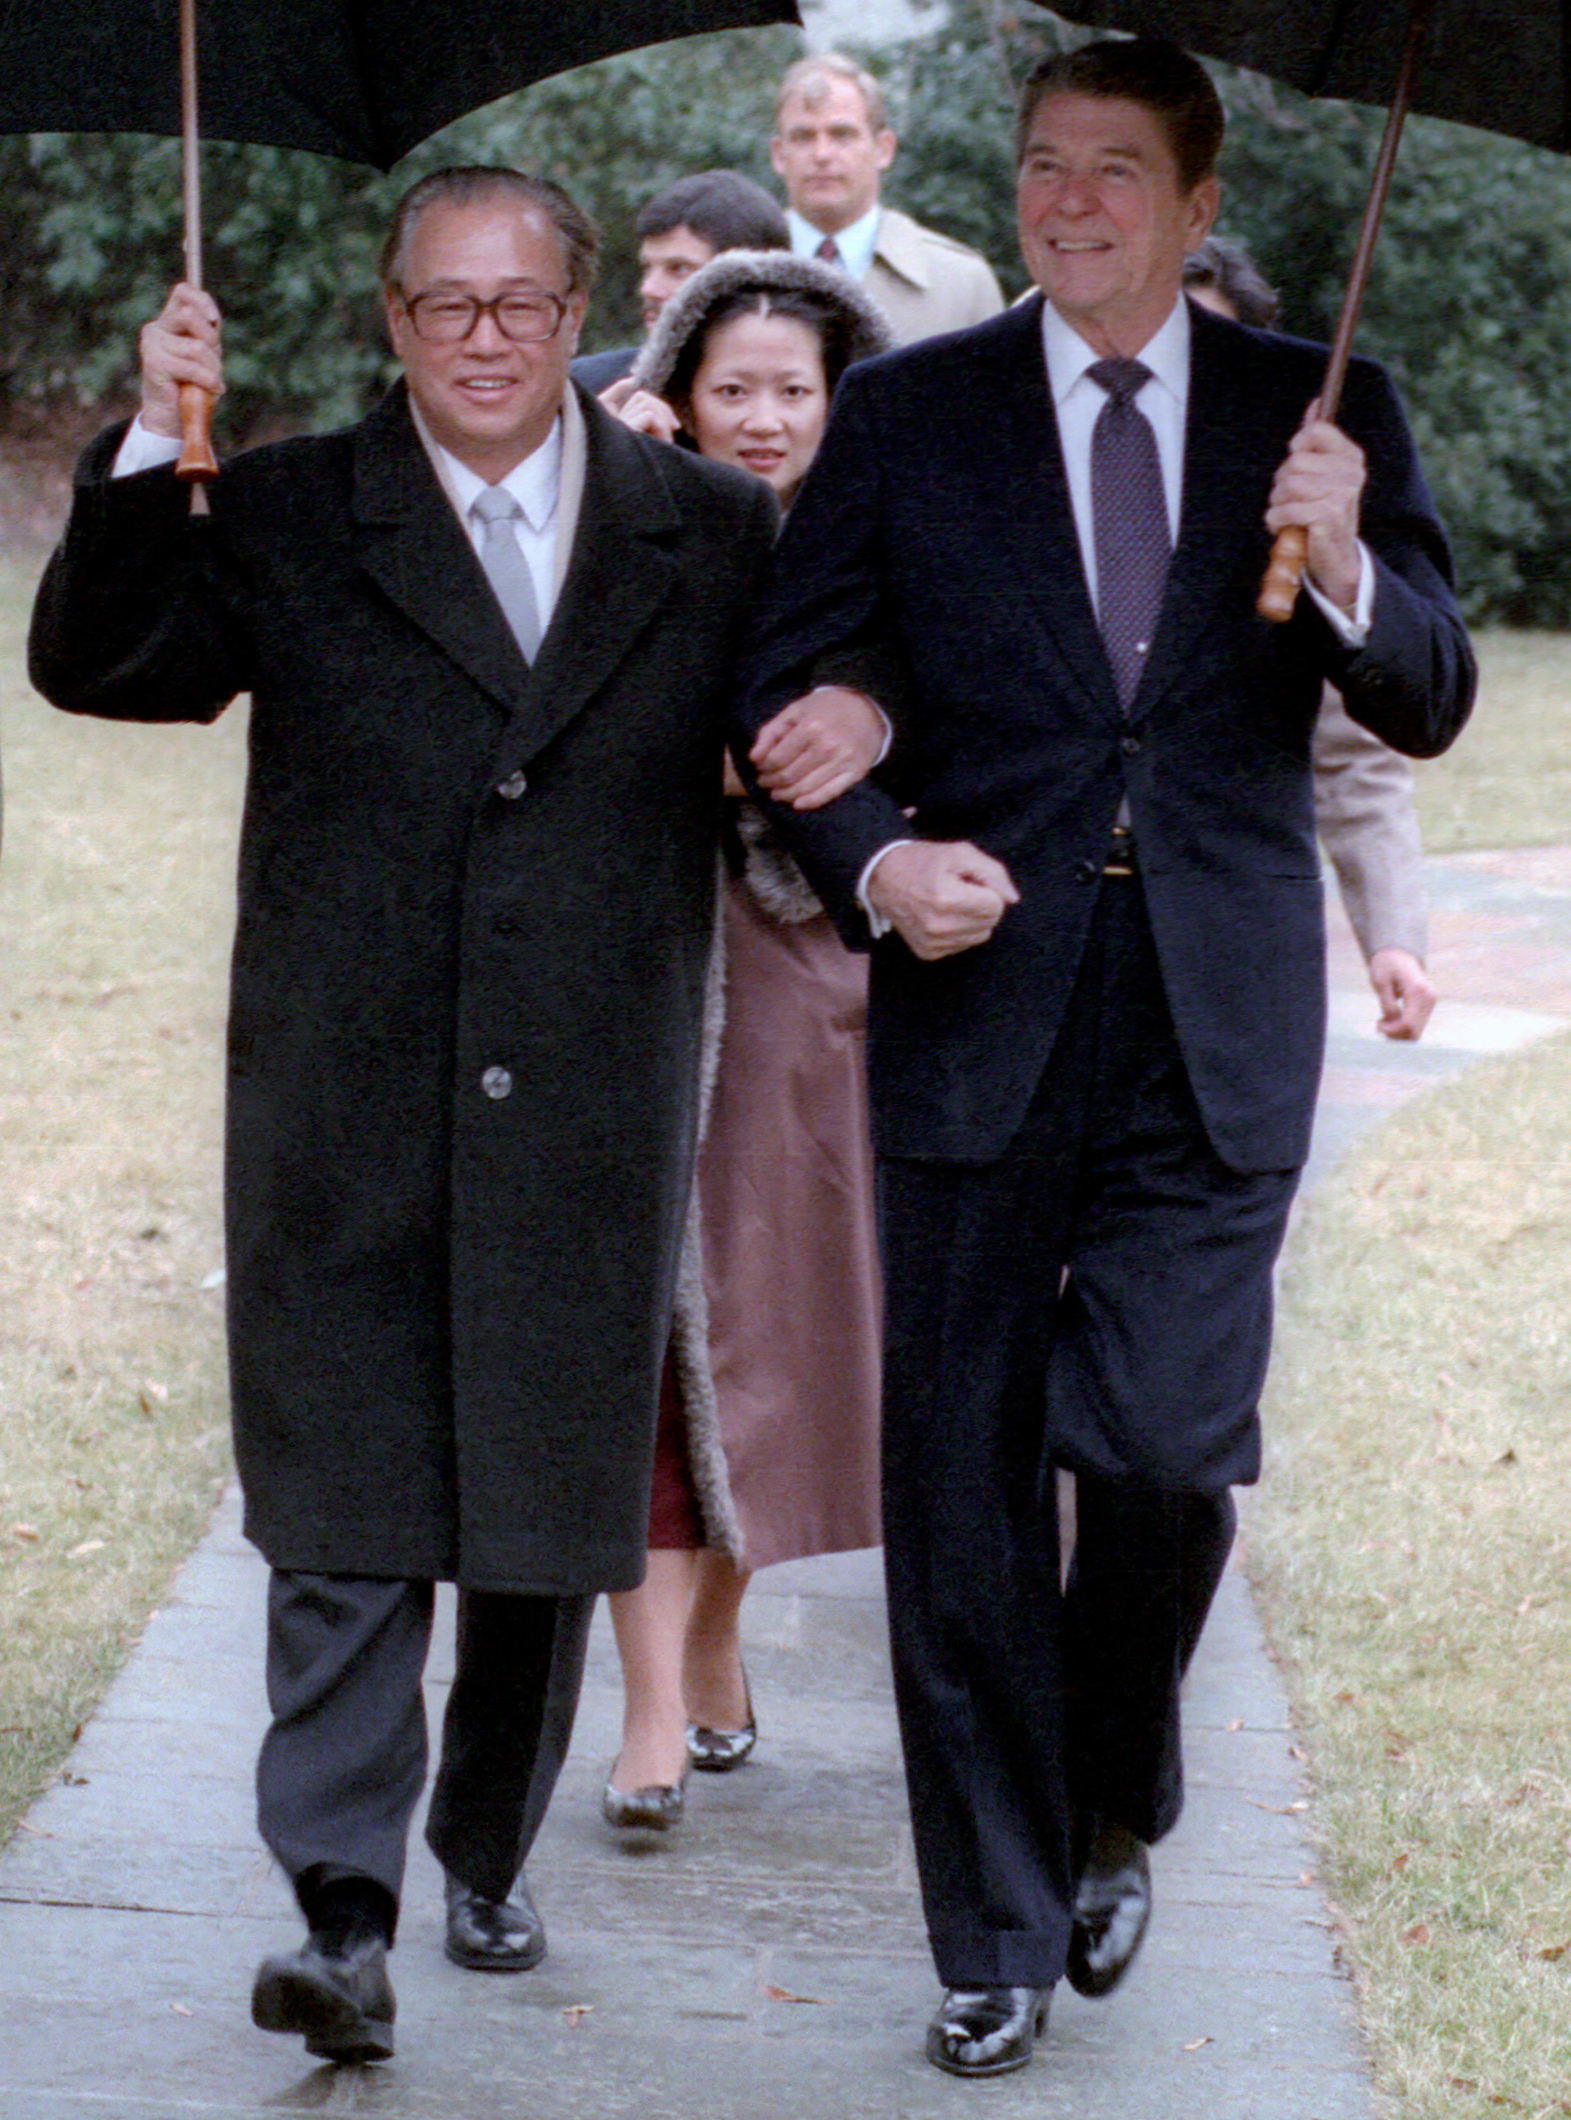 President Reagan walking with Premier Zhao Ziyang of the People's Republic of China during his visit to the White House on January 10, 1984. - Zhao Ziyang